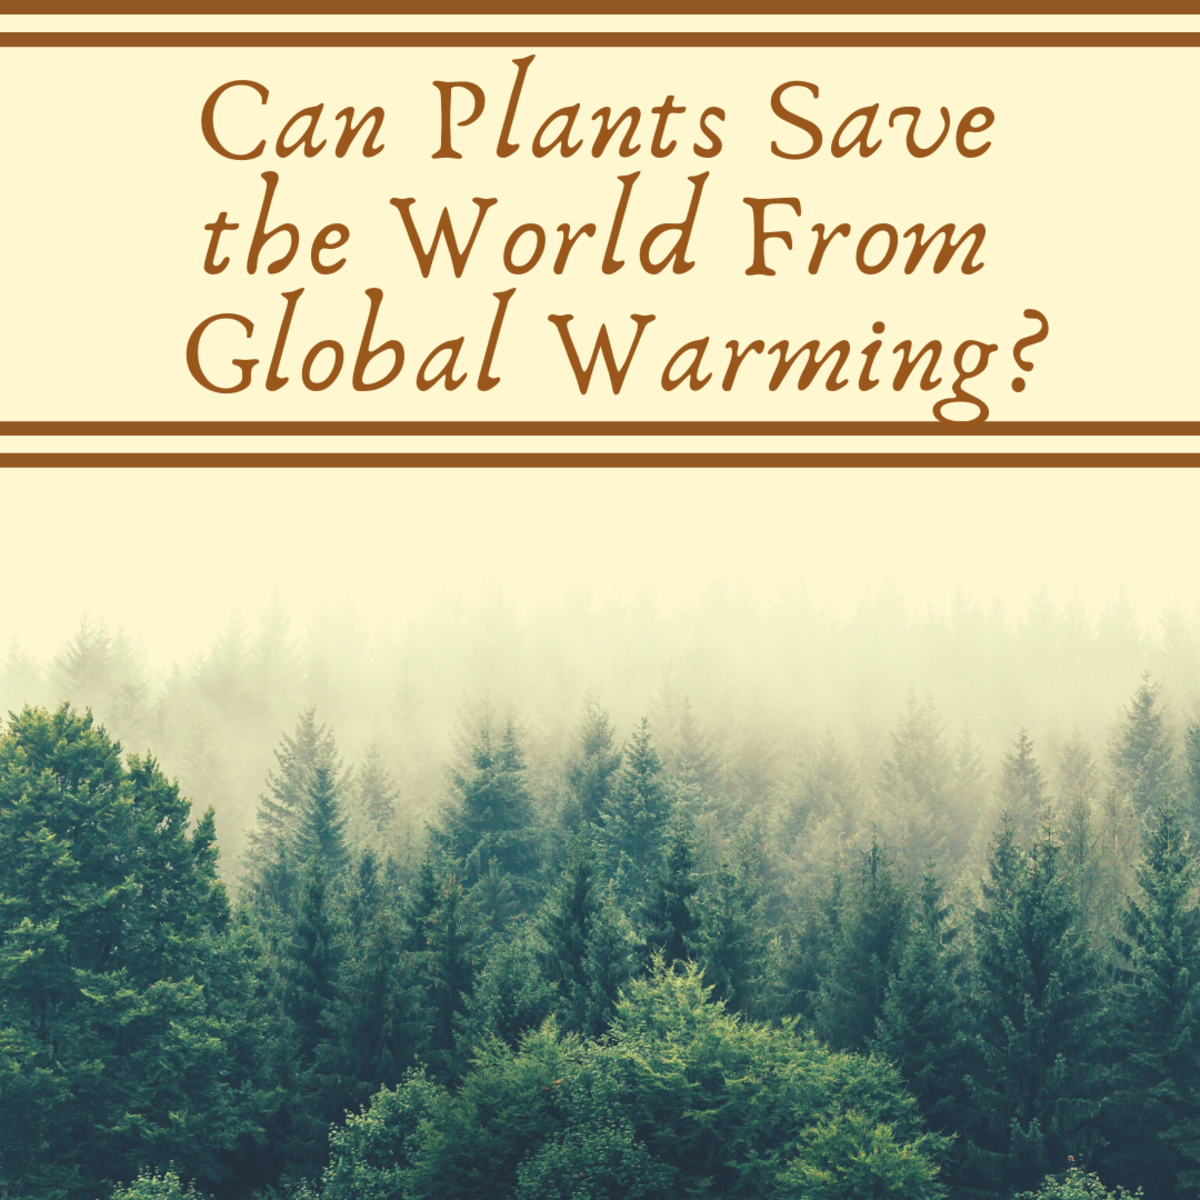 Can Plants Save the World From Global Climate Change?